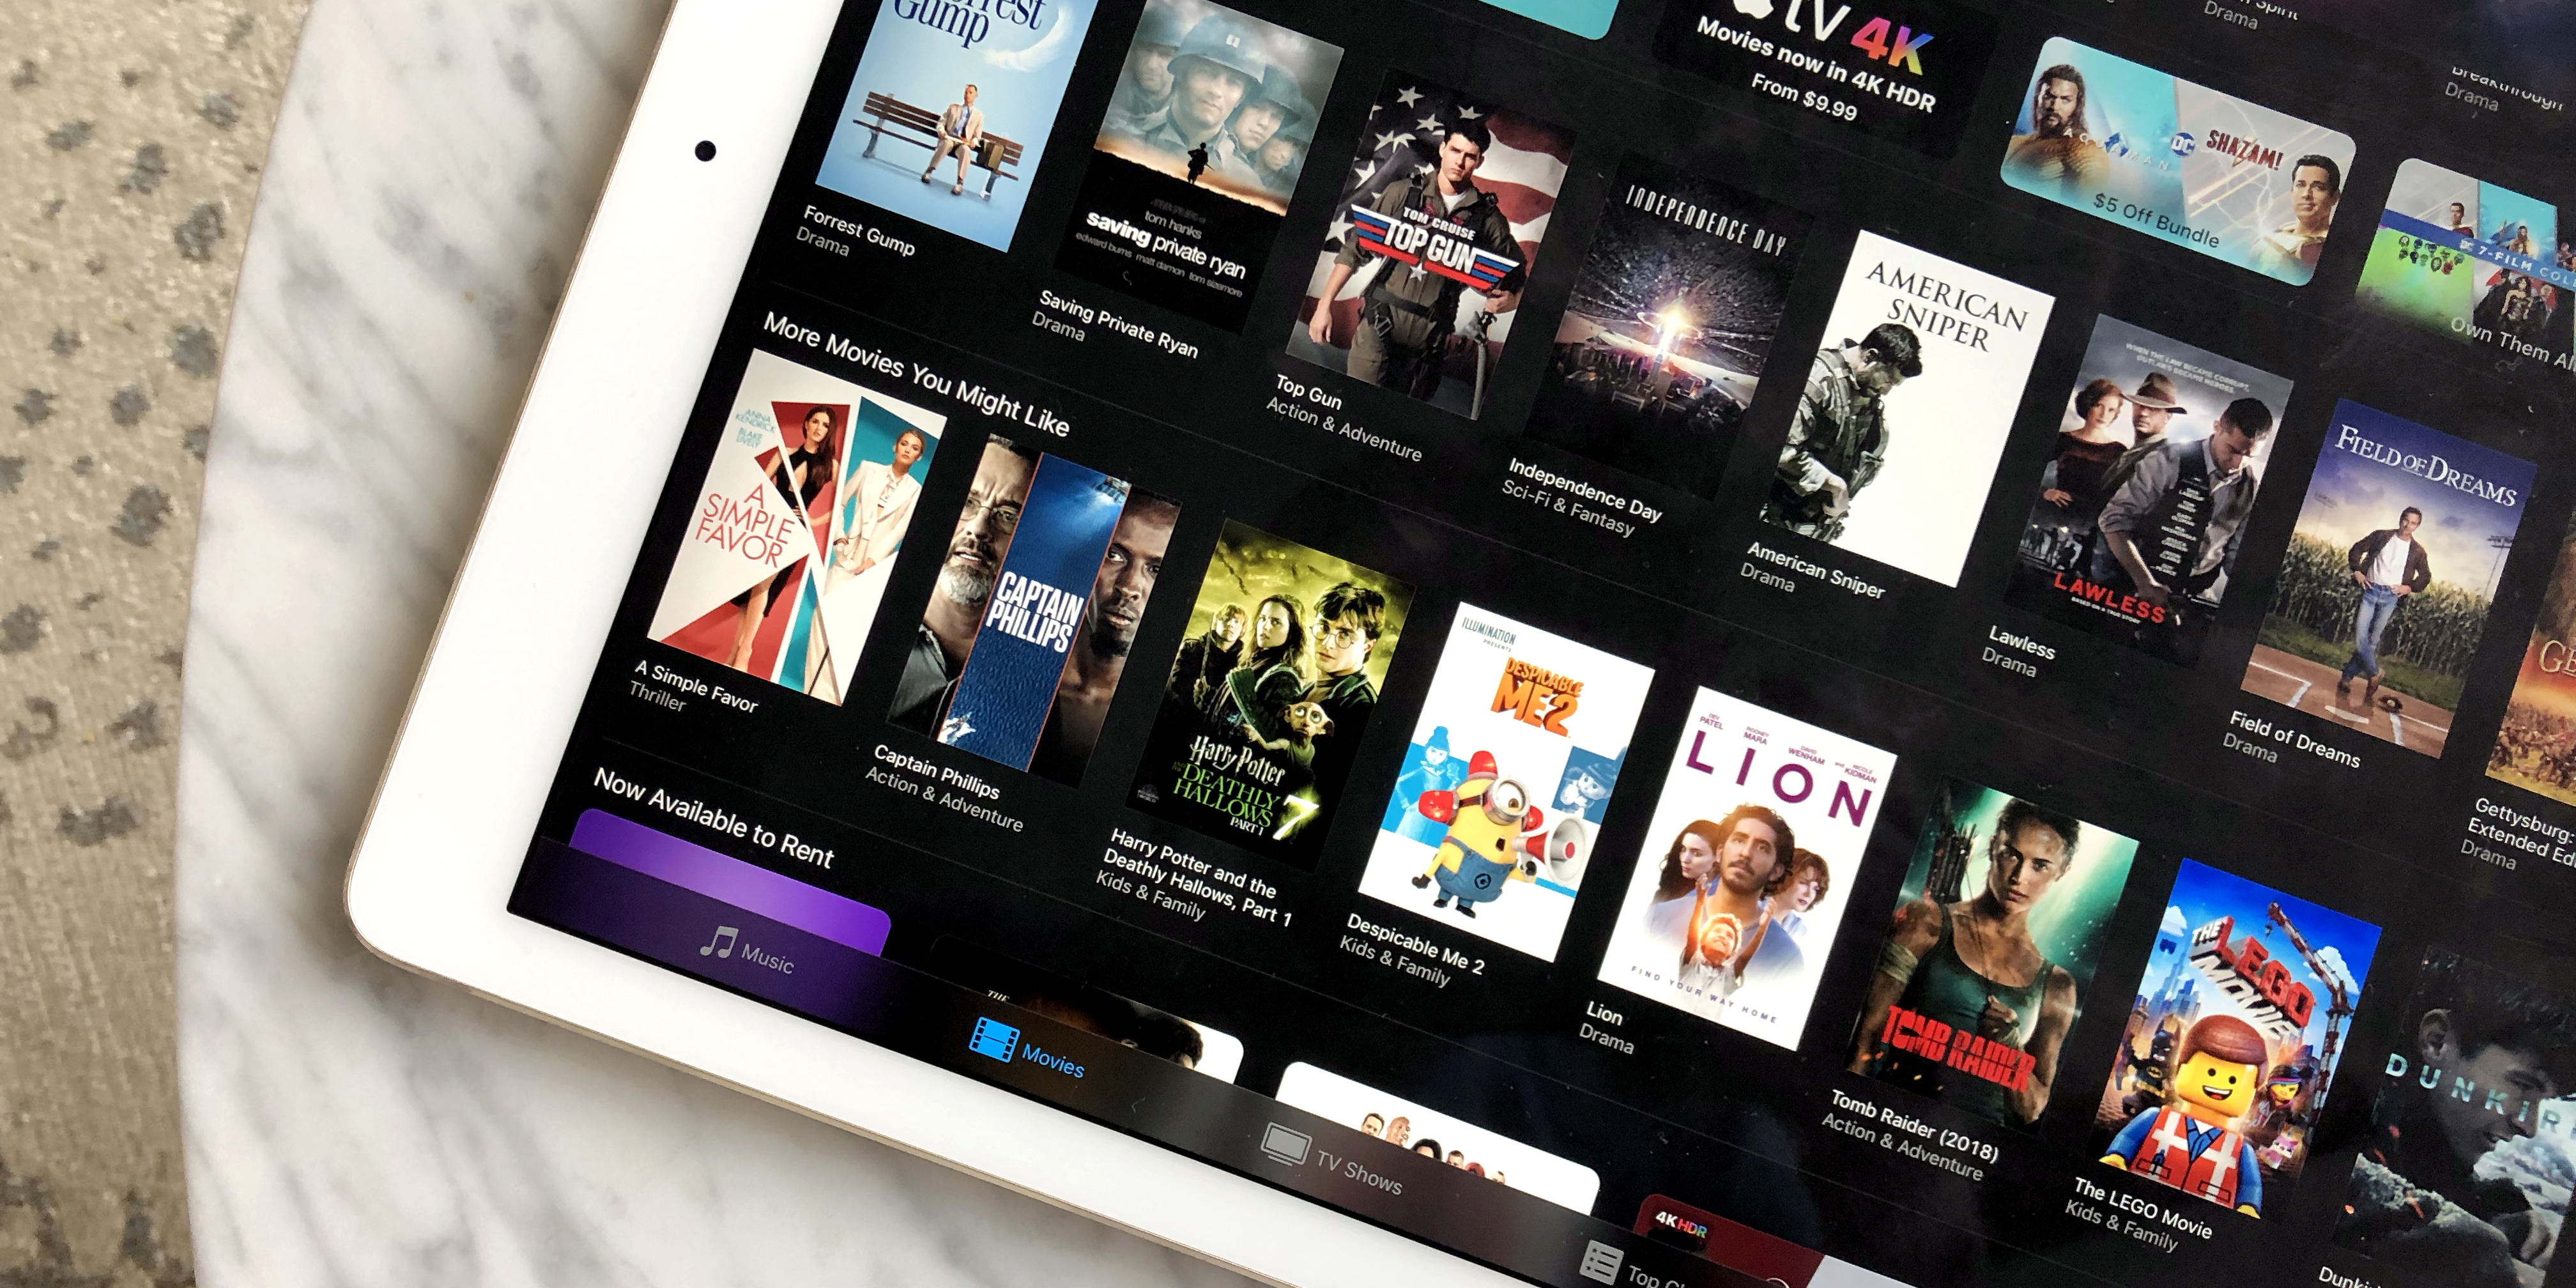 iTunes July 4th movie sale has $5 titles, '80s movies, $1 rentals, more